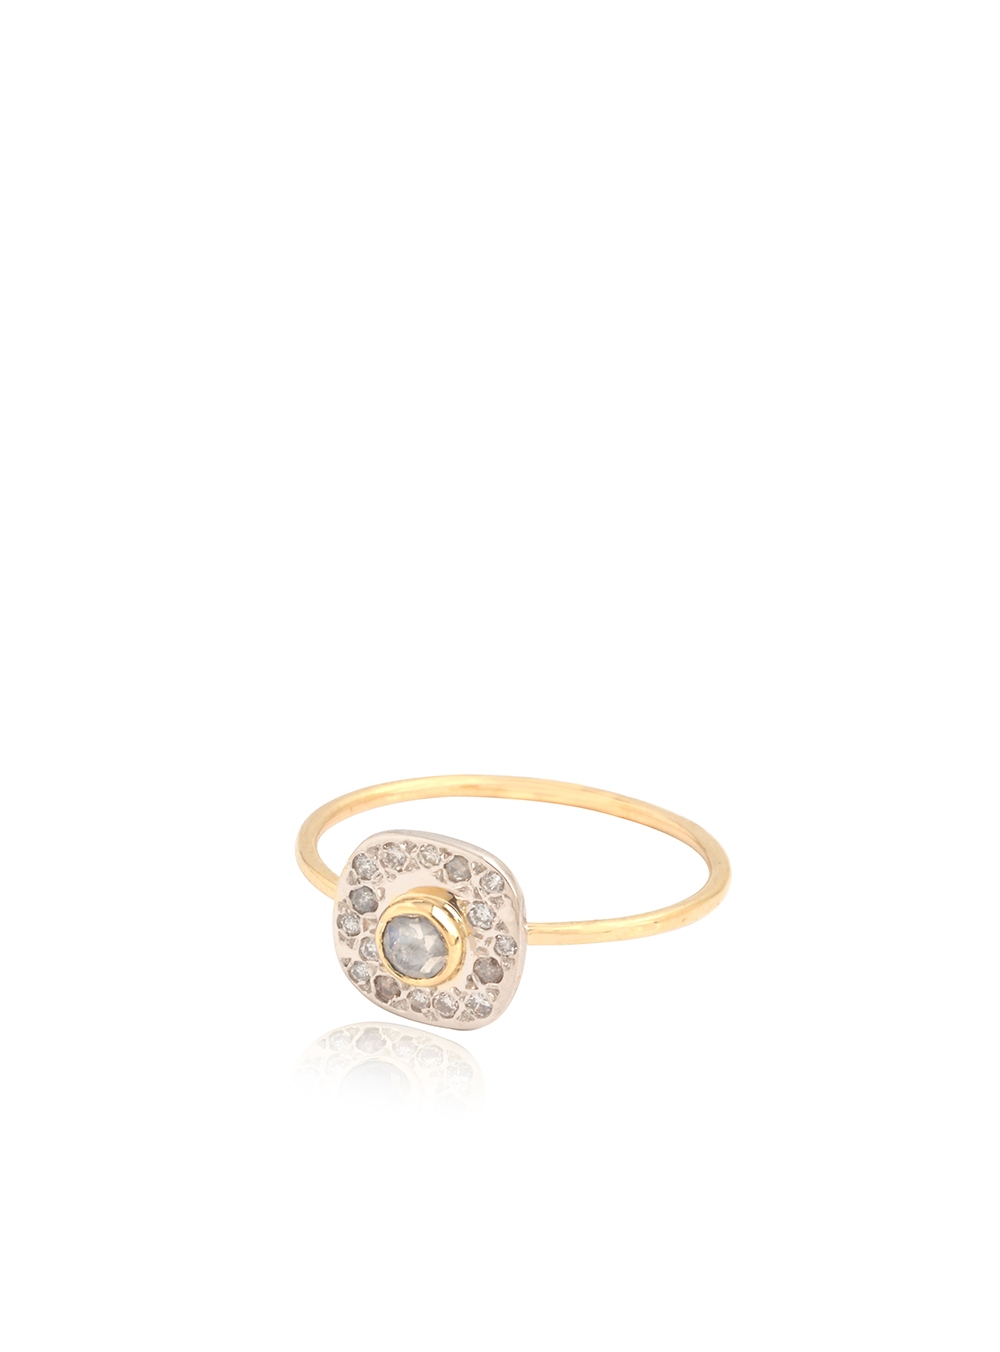 BAGUE PAVÉ DIAMANTS